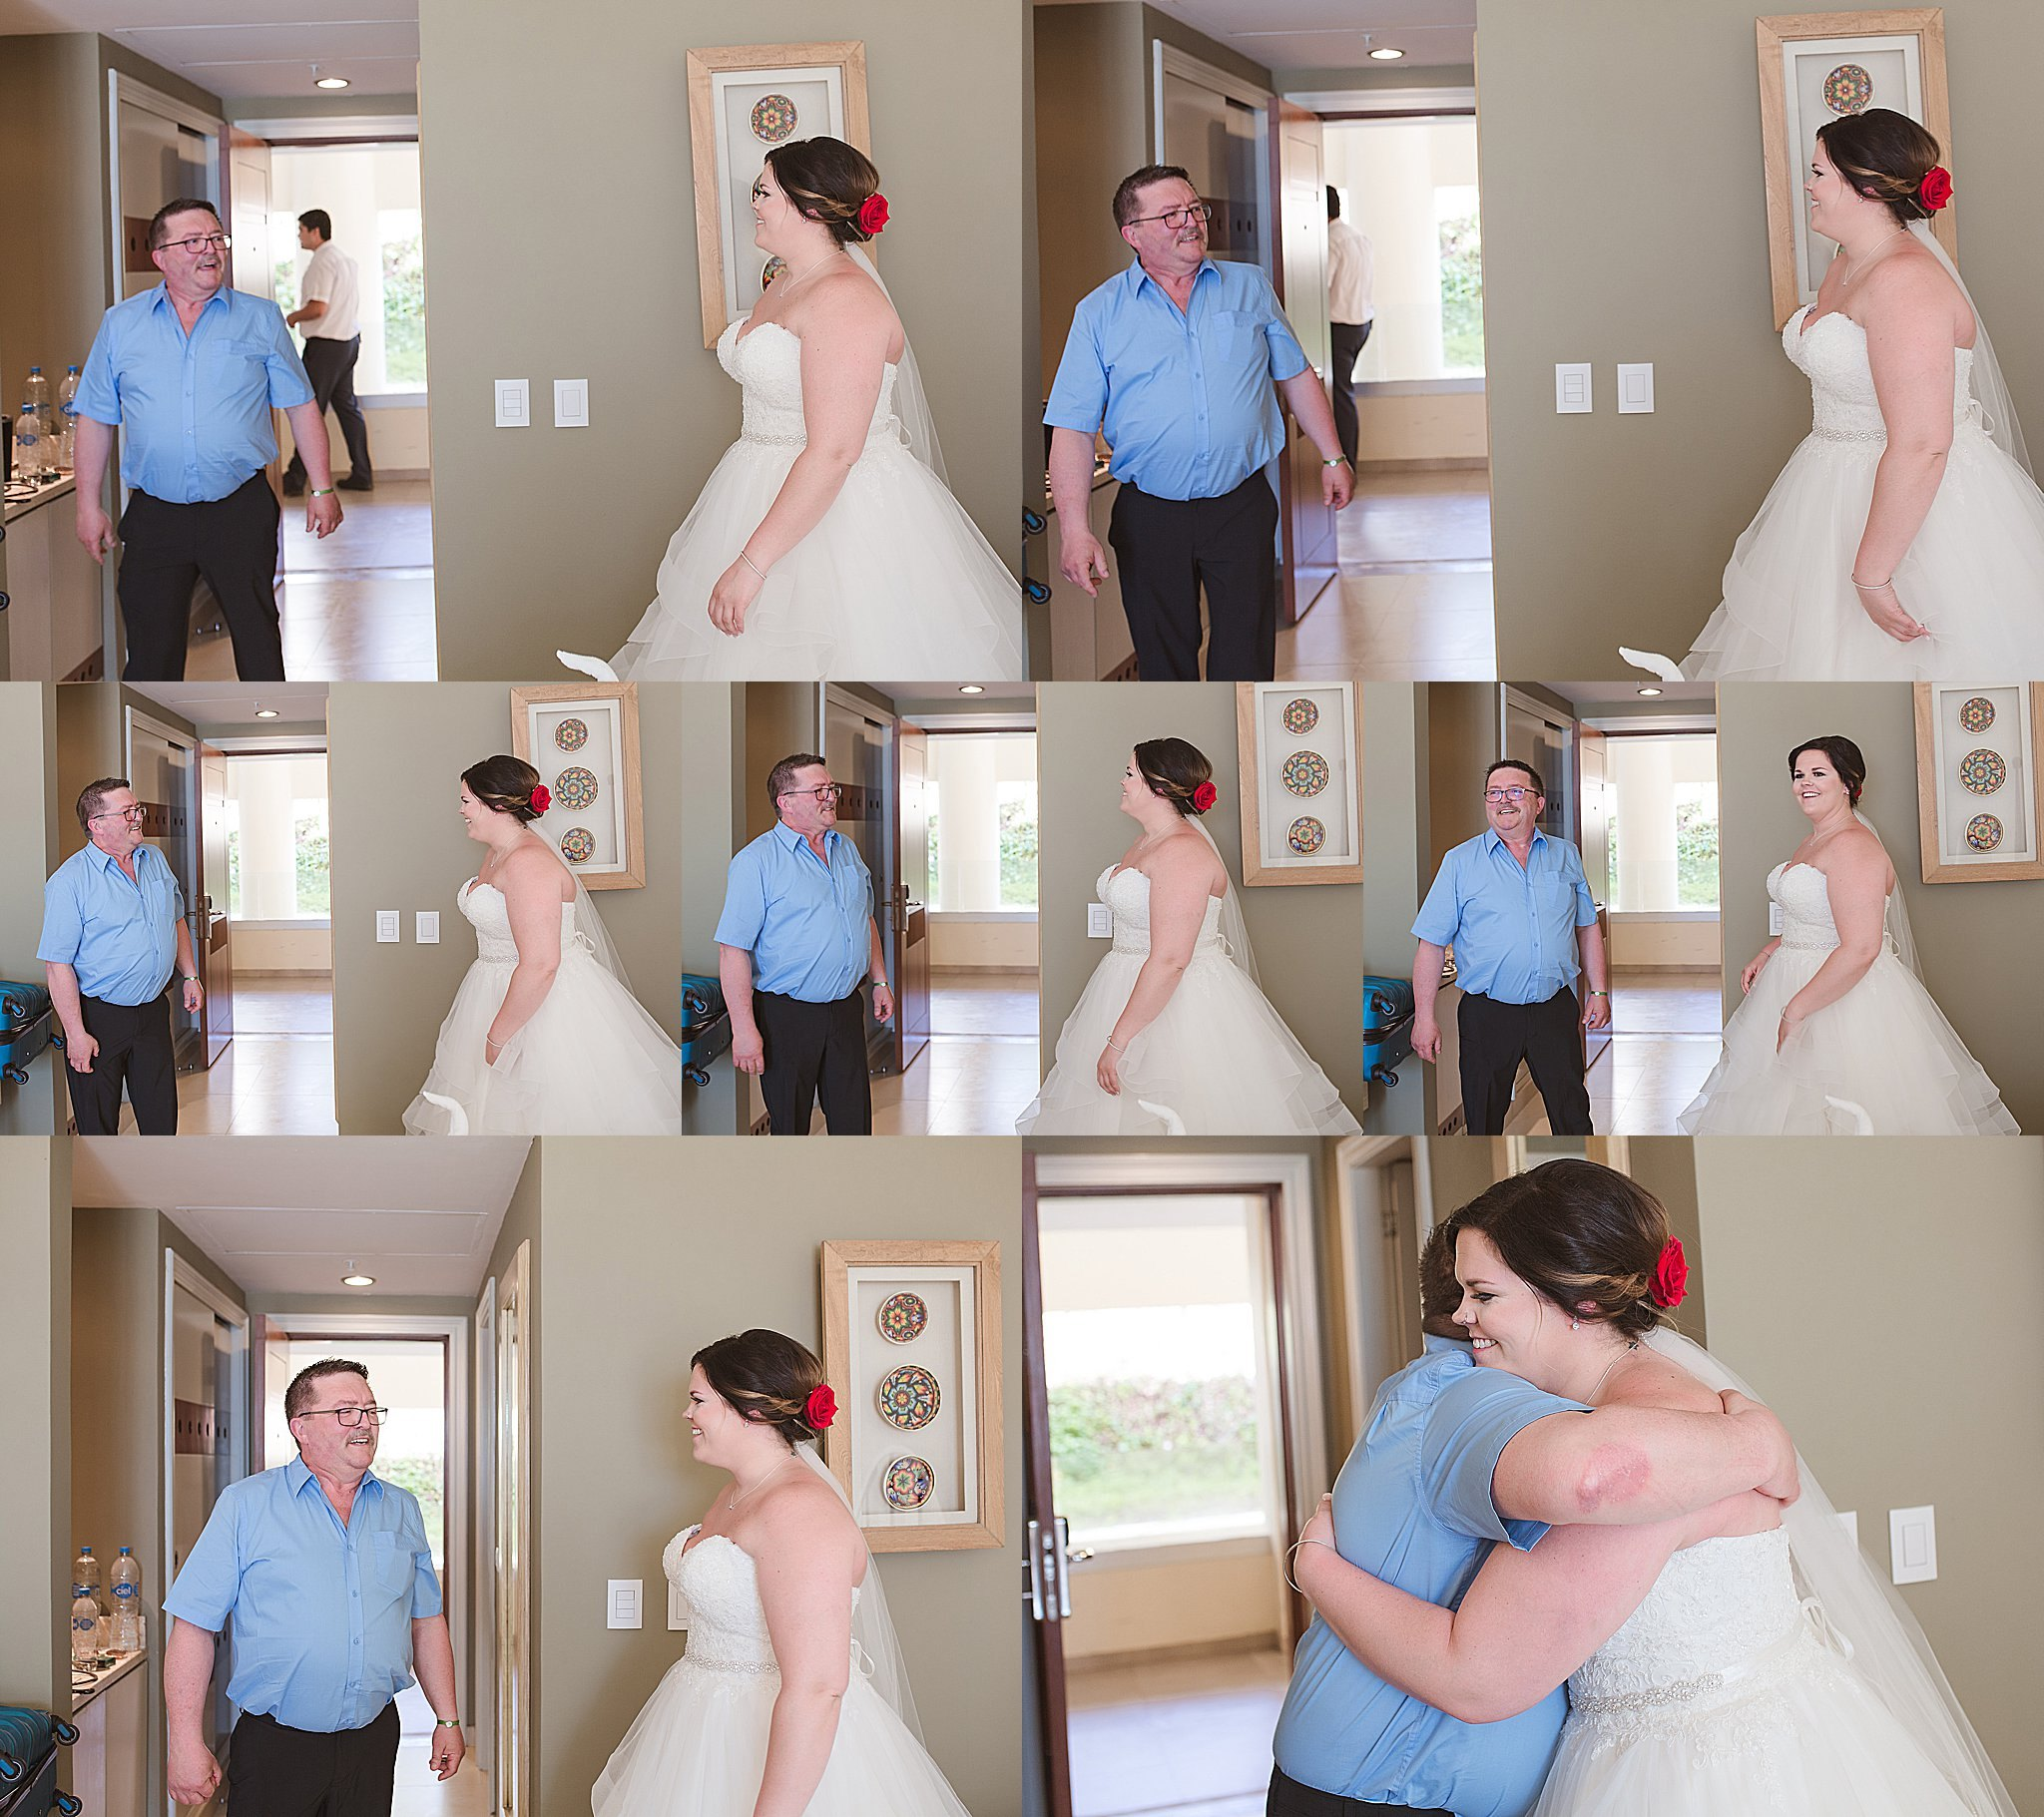 That first glance from dad of his baby girl on her wedding day - I'm not crying you're crying